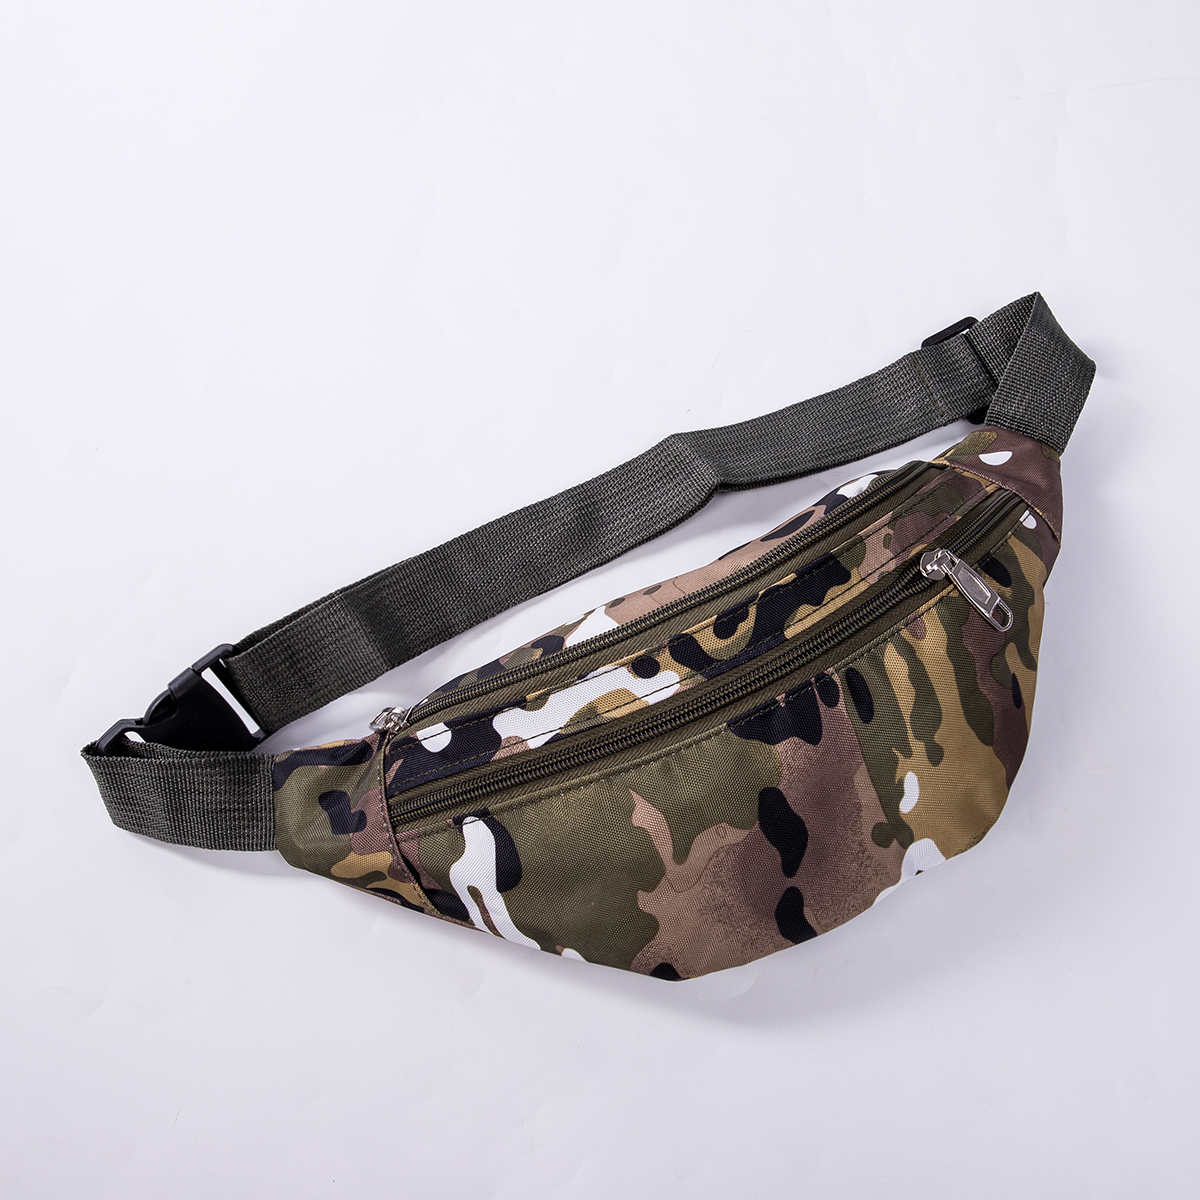 2019 Newest Hot Travel BUM BAG Bumbag Waist Money Belt Passport Wallet Zipped Security Pouch Camouflage Waist Packs